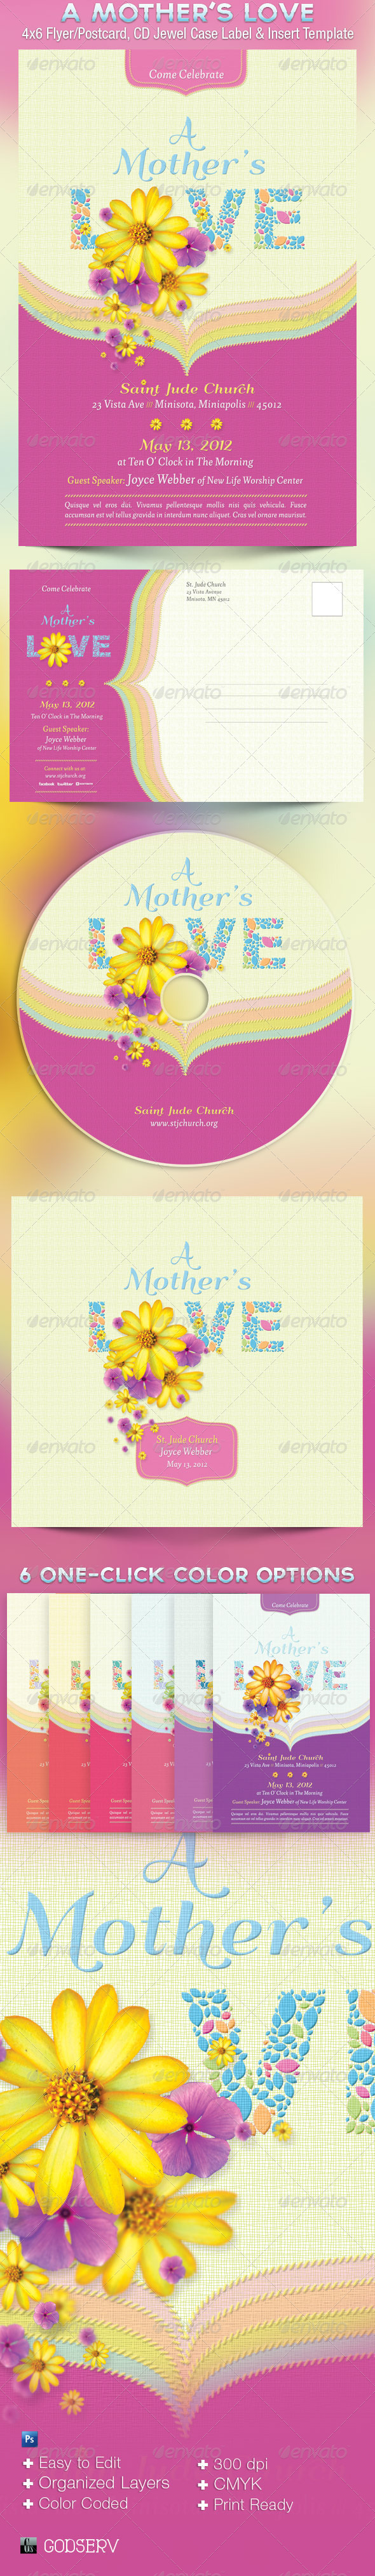 Mothers Love Flyer Postcard CD Template - Church Flyers